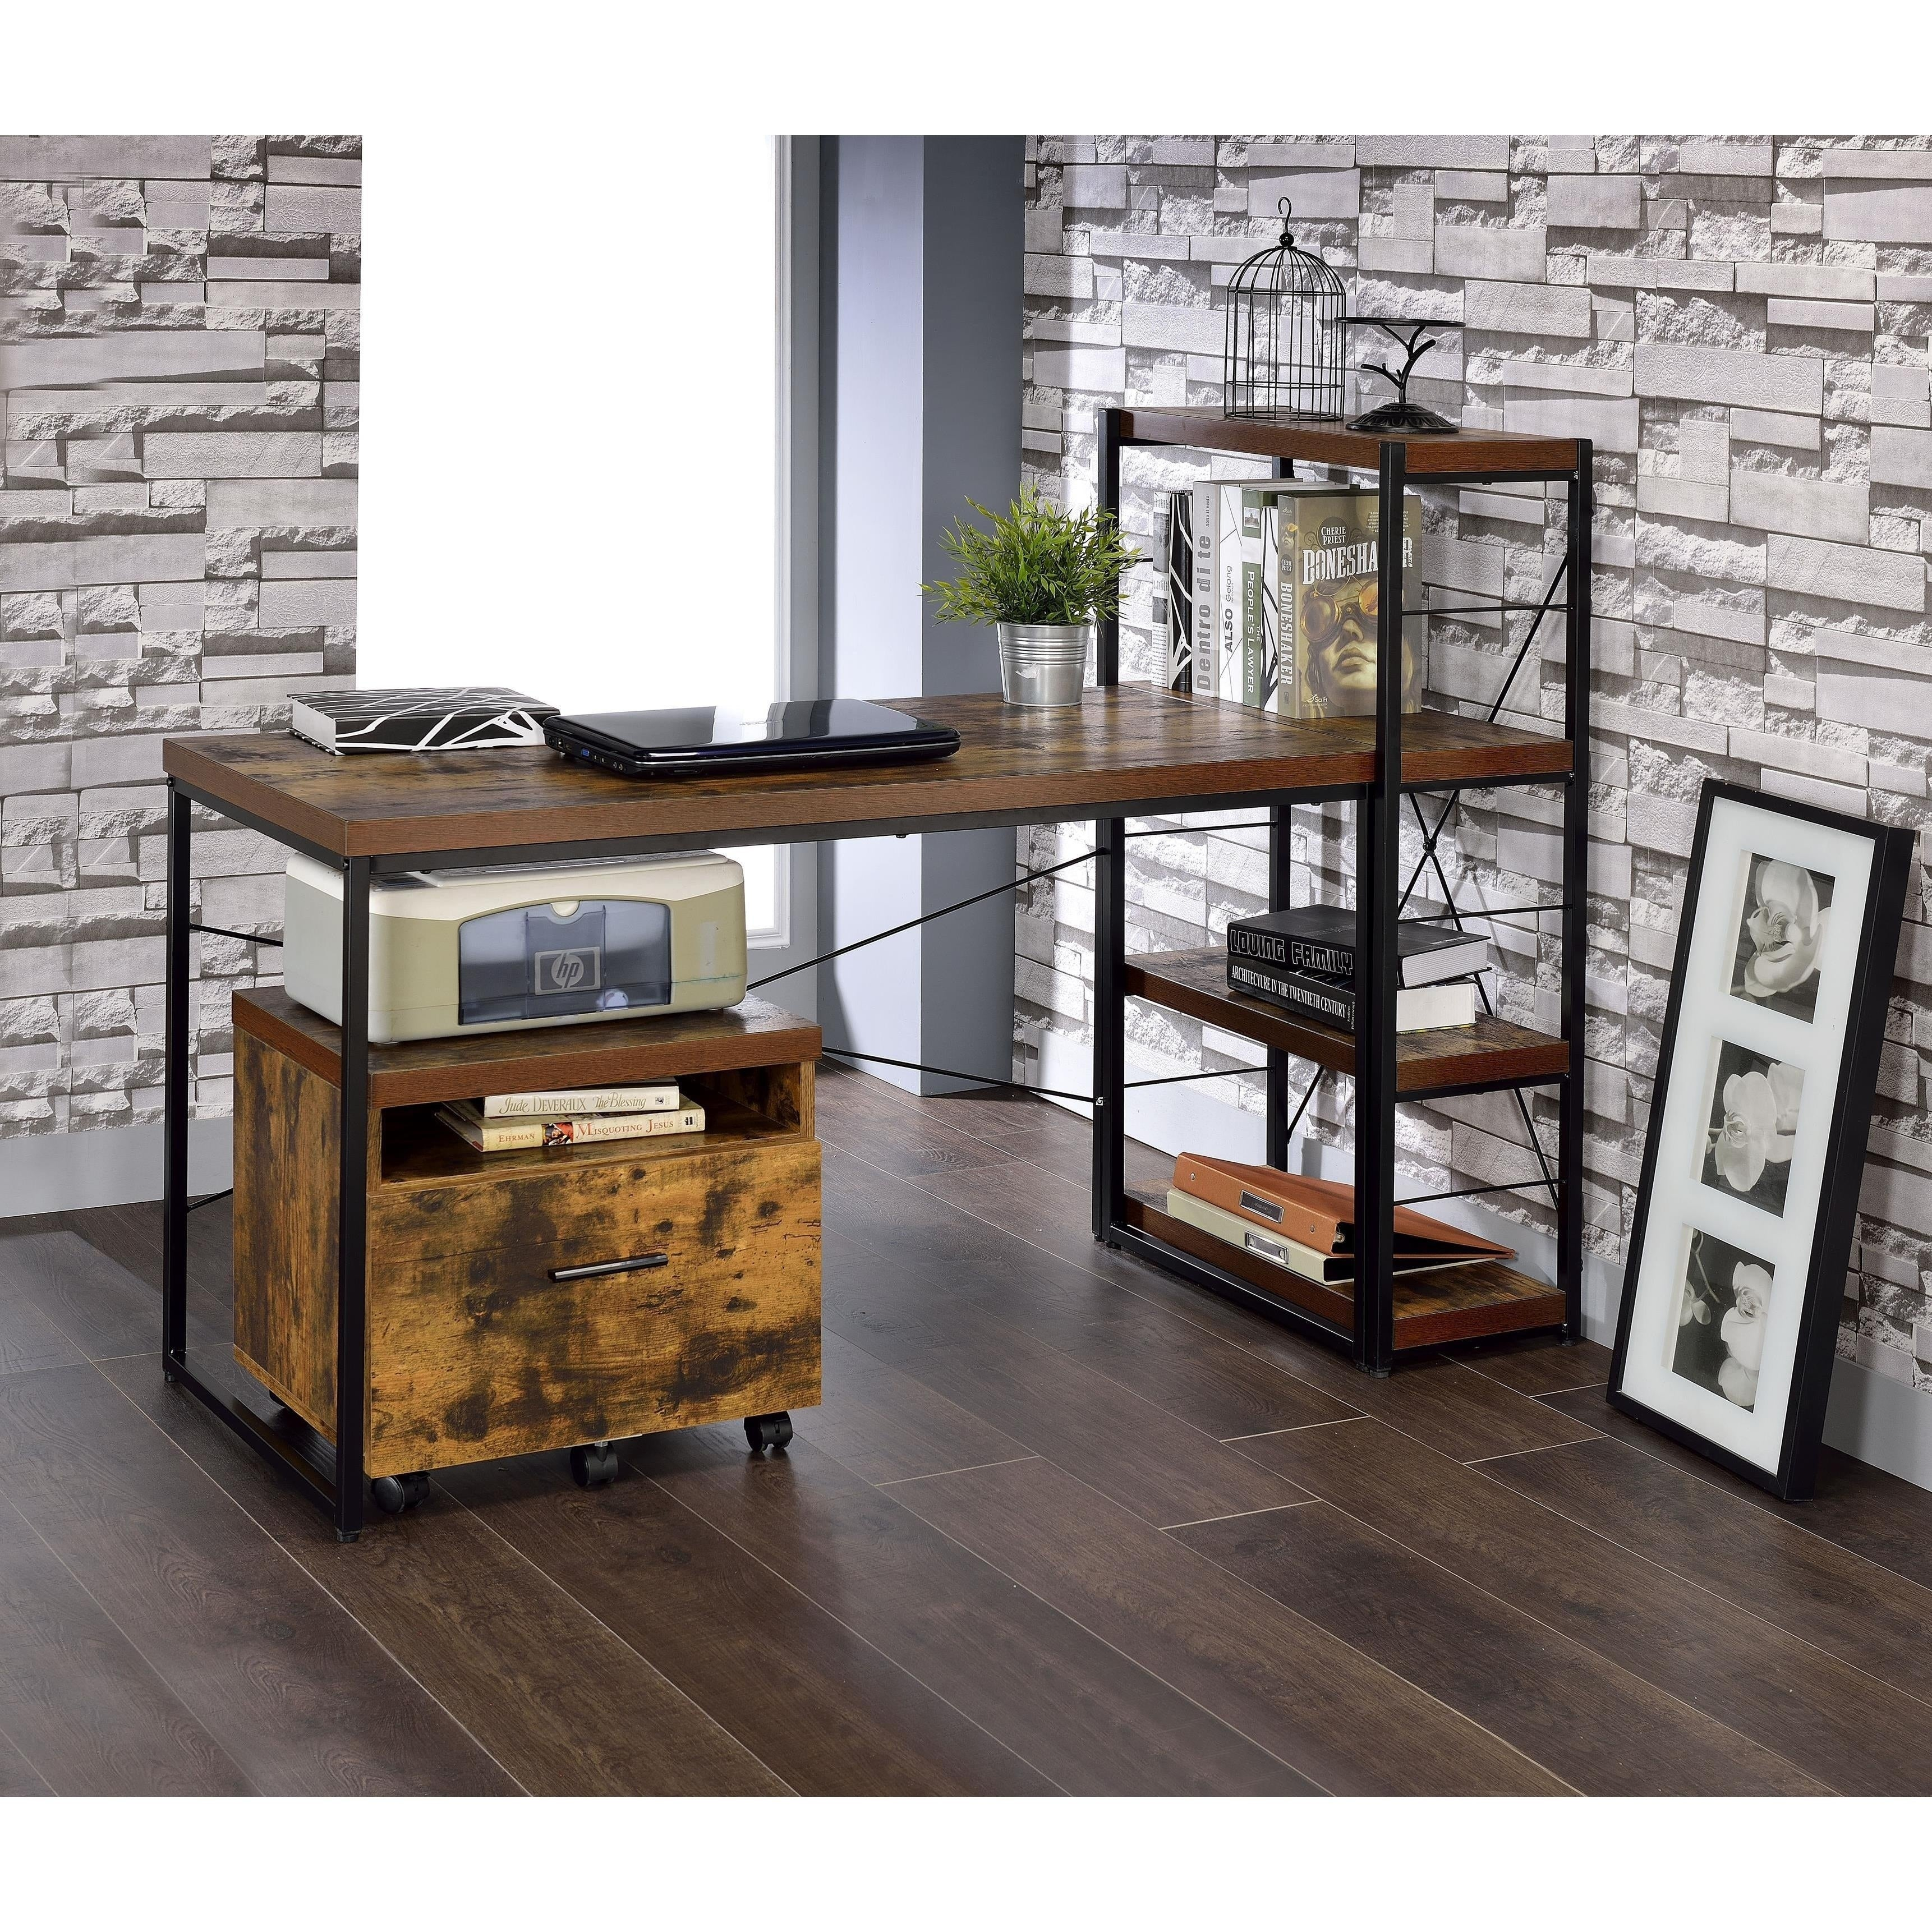 Buy Etagere Bookshelves Bookcases Online At Overstock